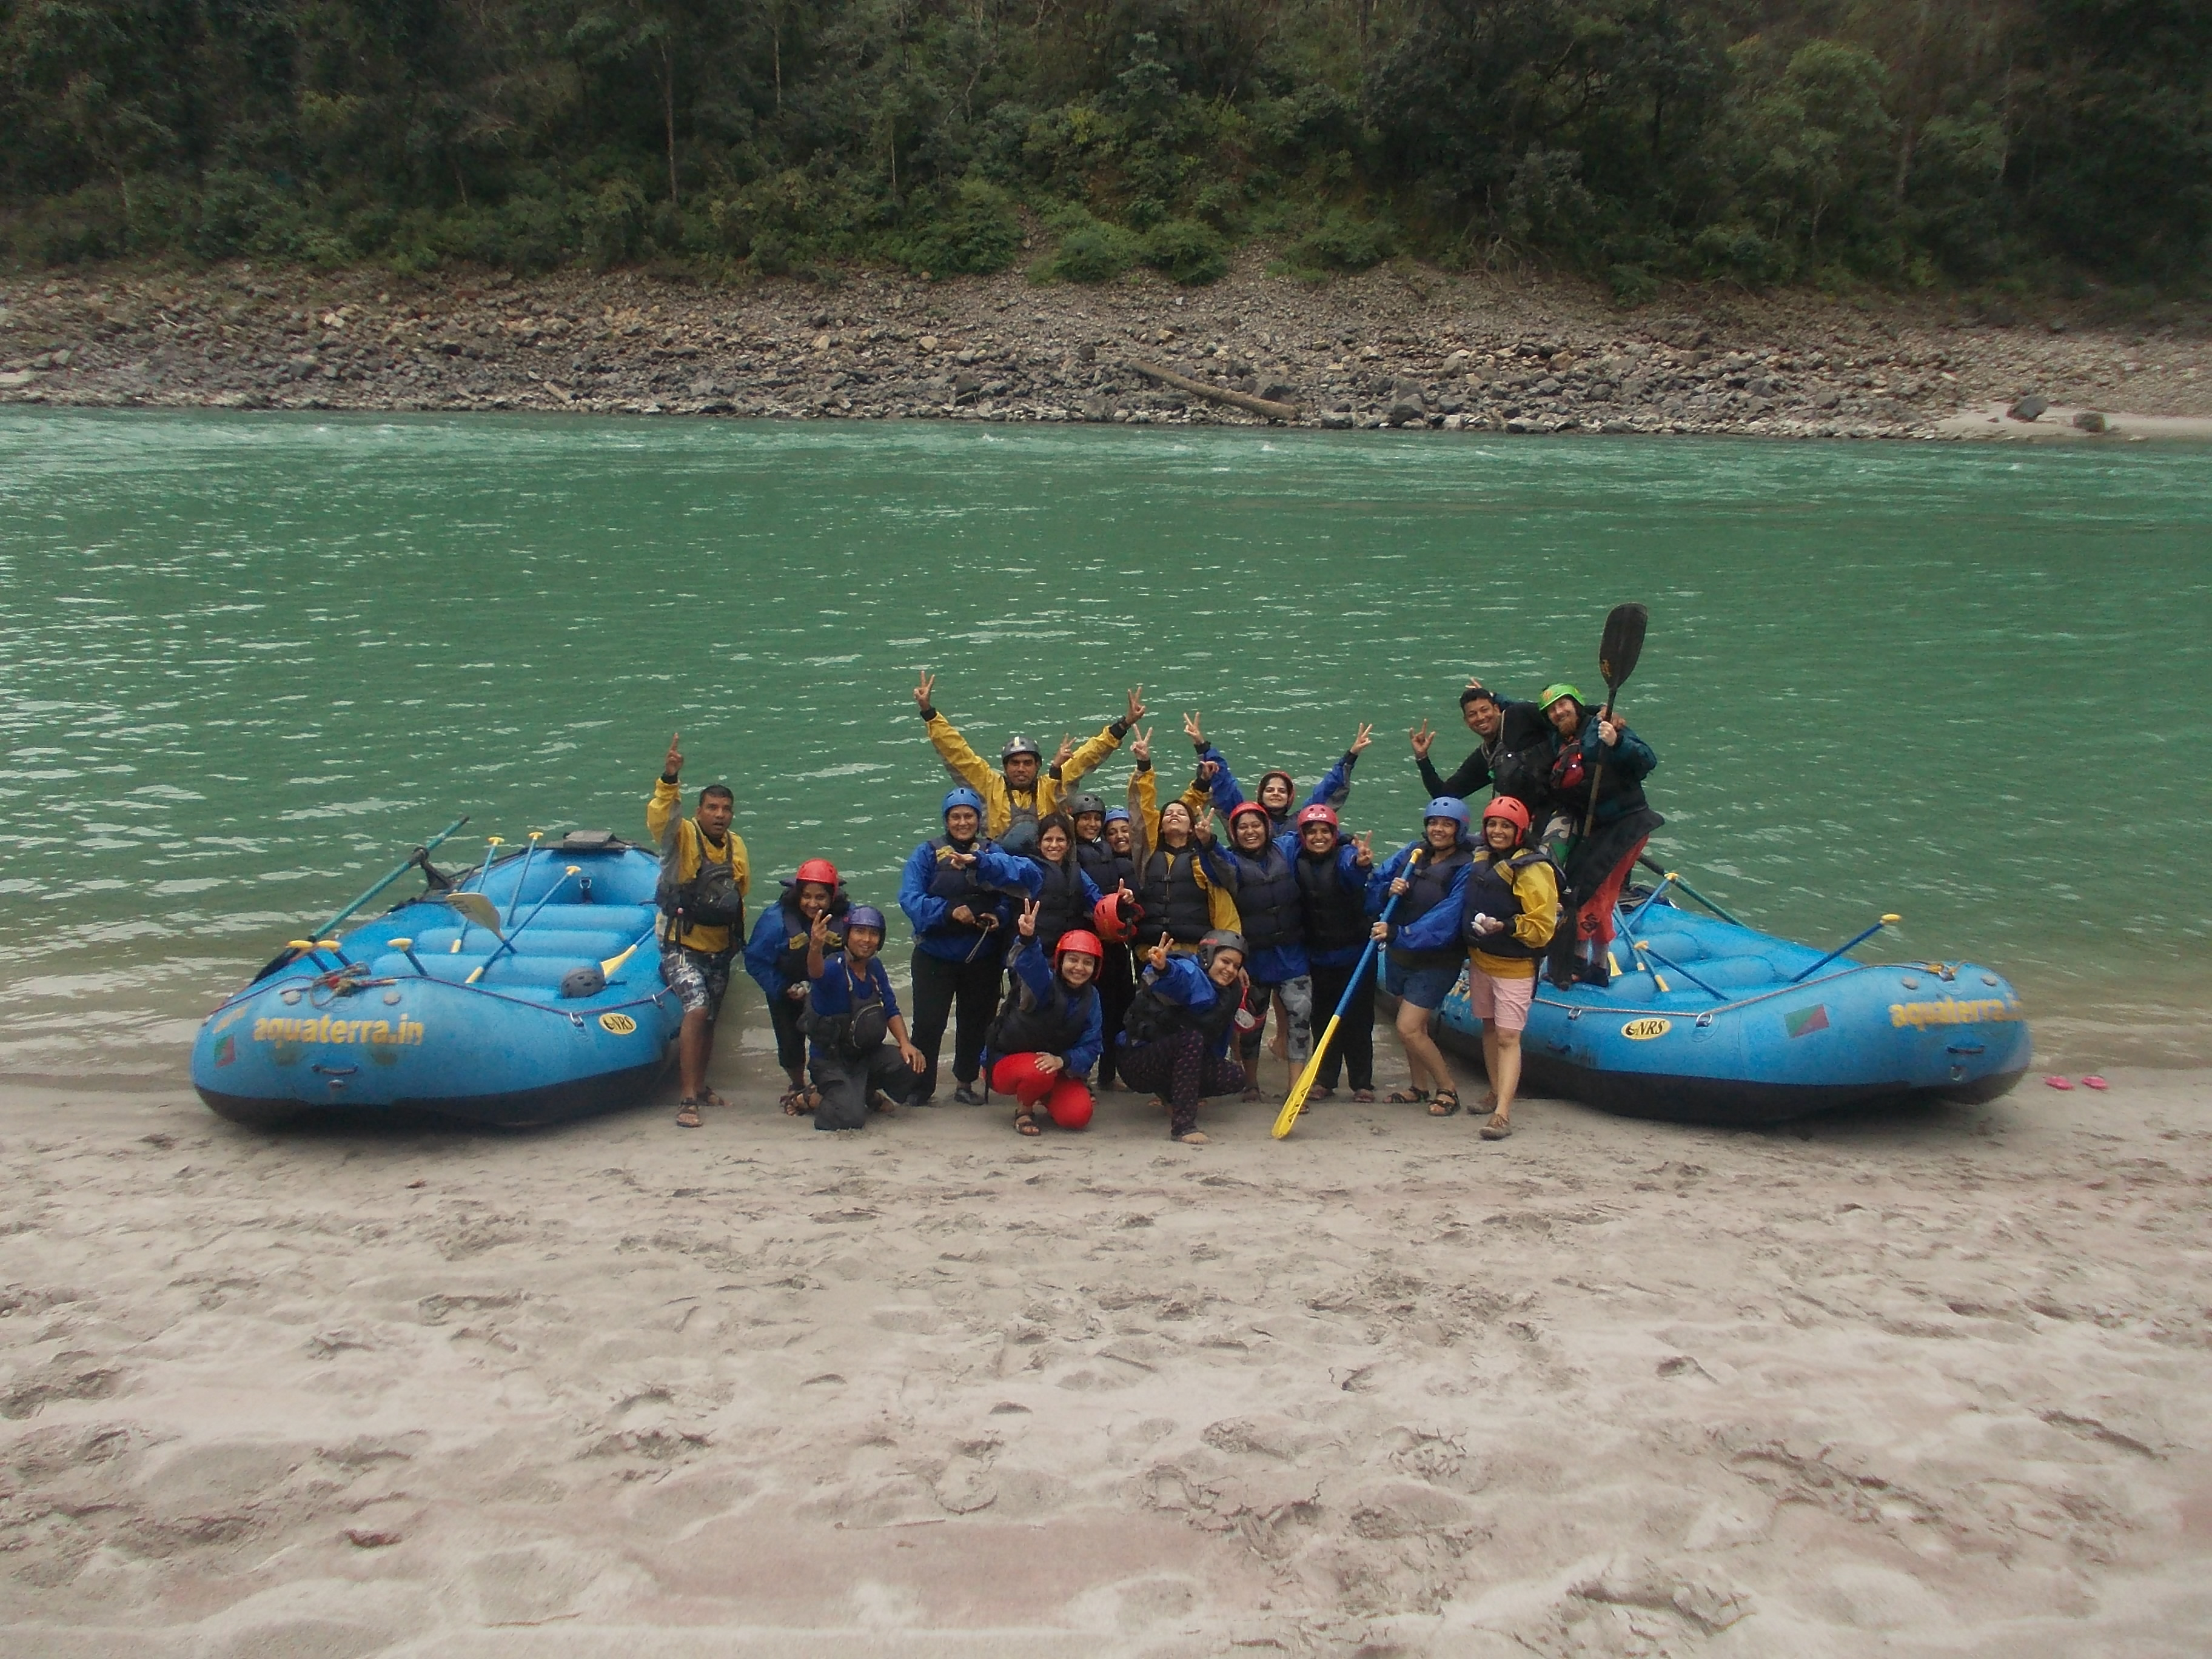 Rafting, river Ganges and rapids!